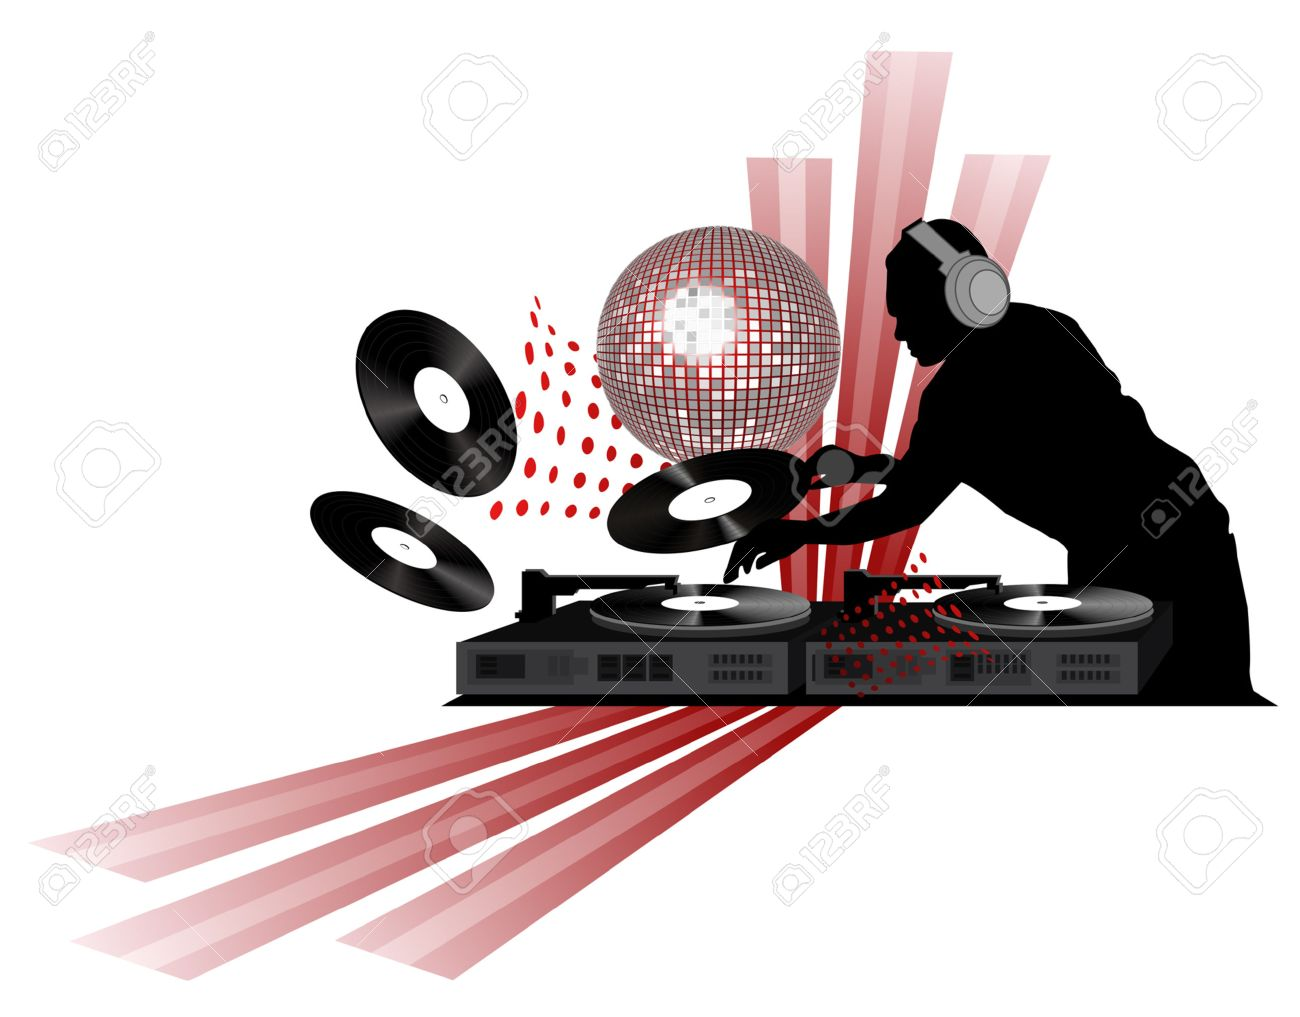 Clipart with dj, turntable and shining disco ball.